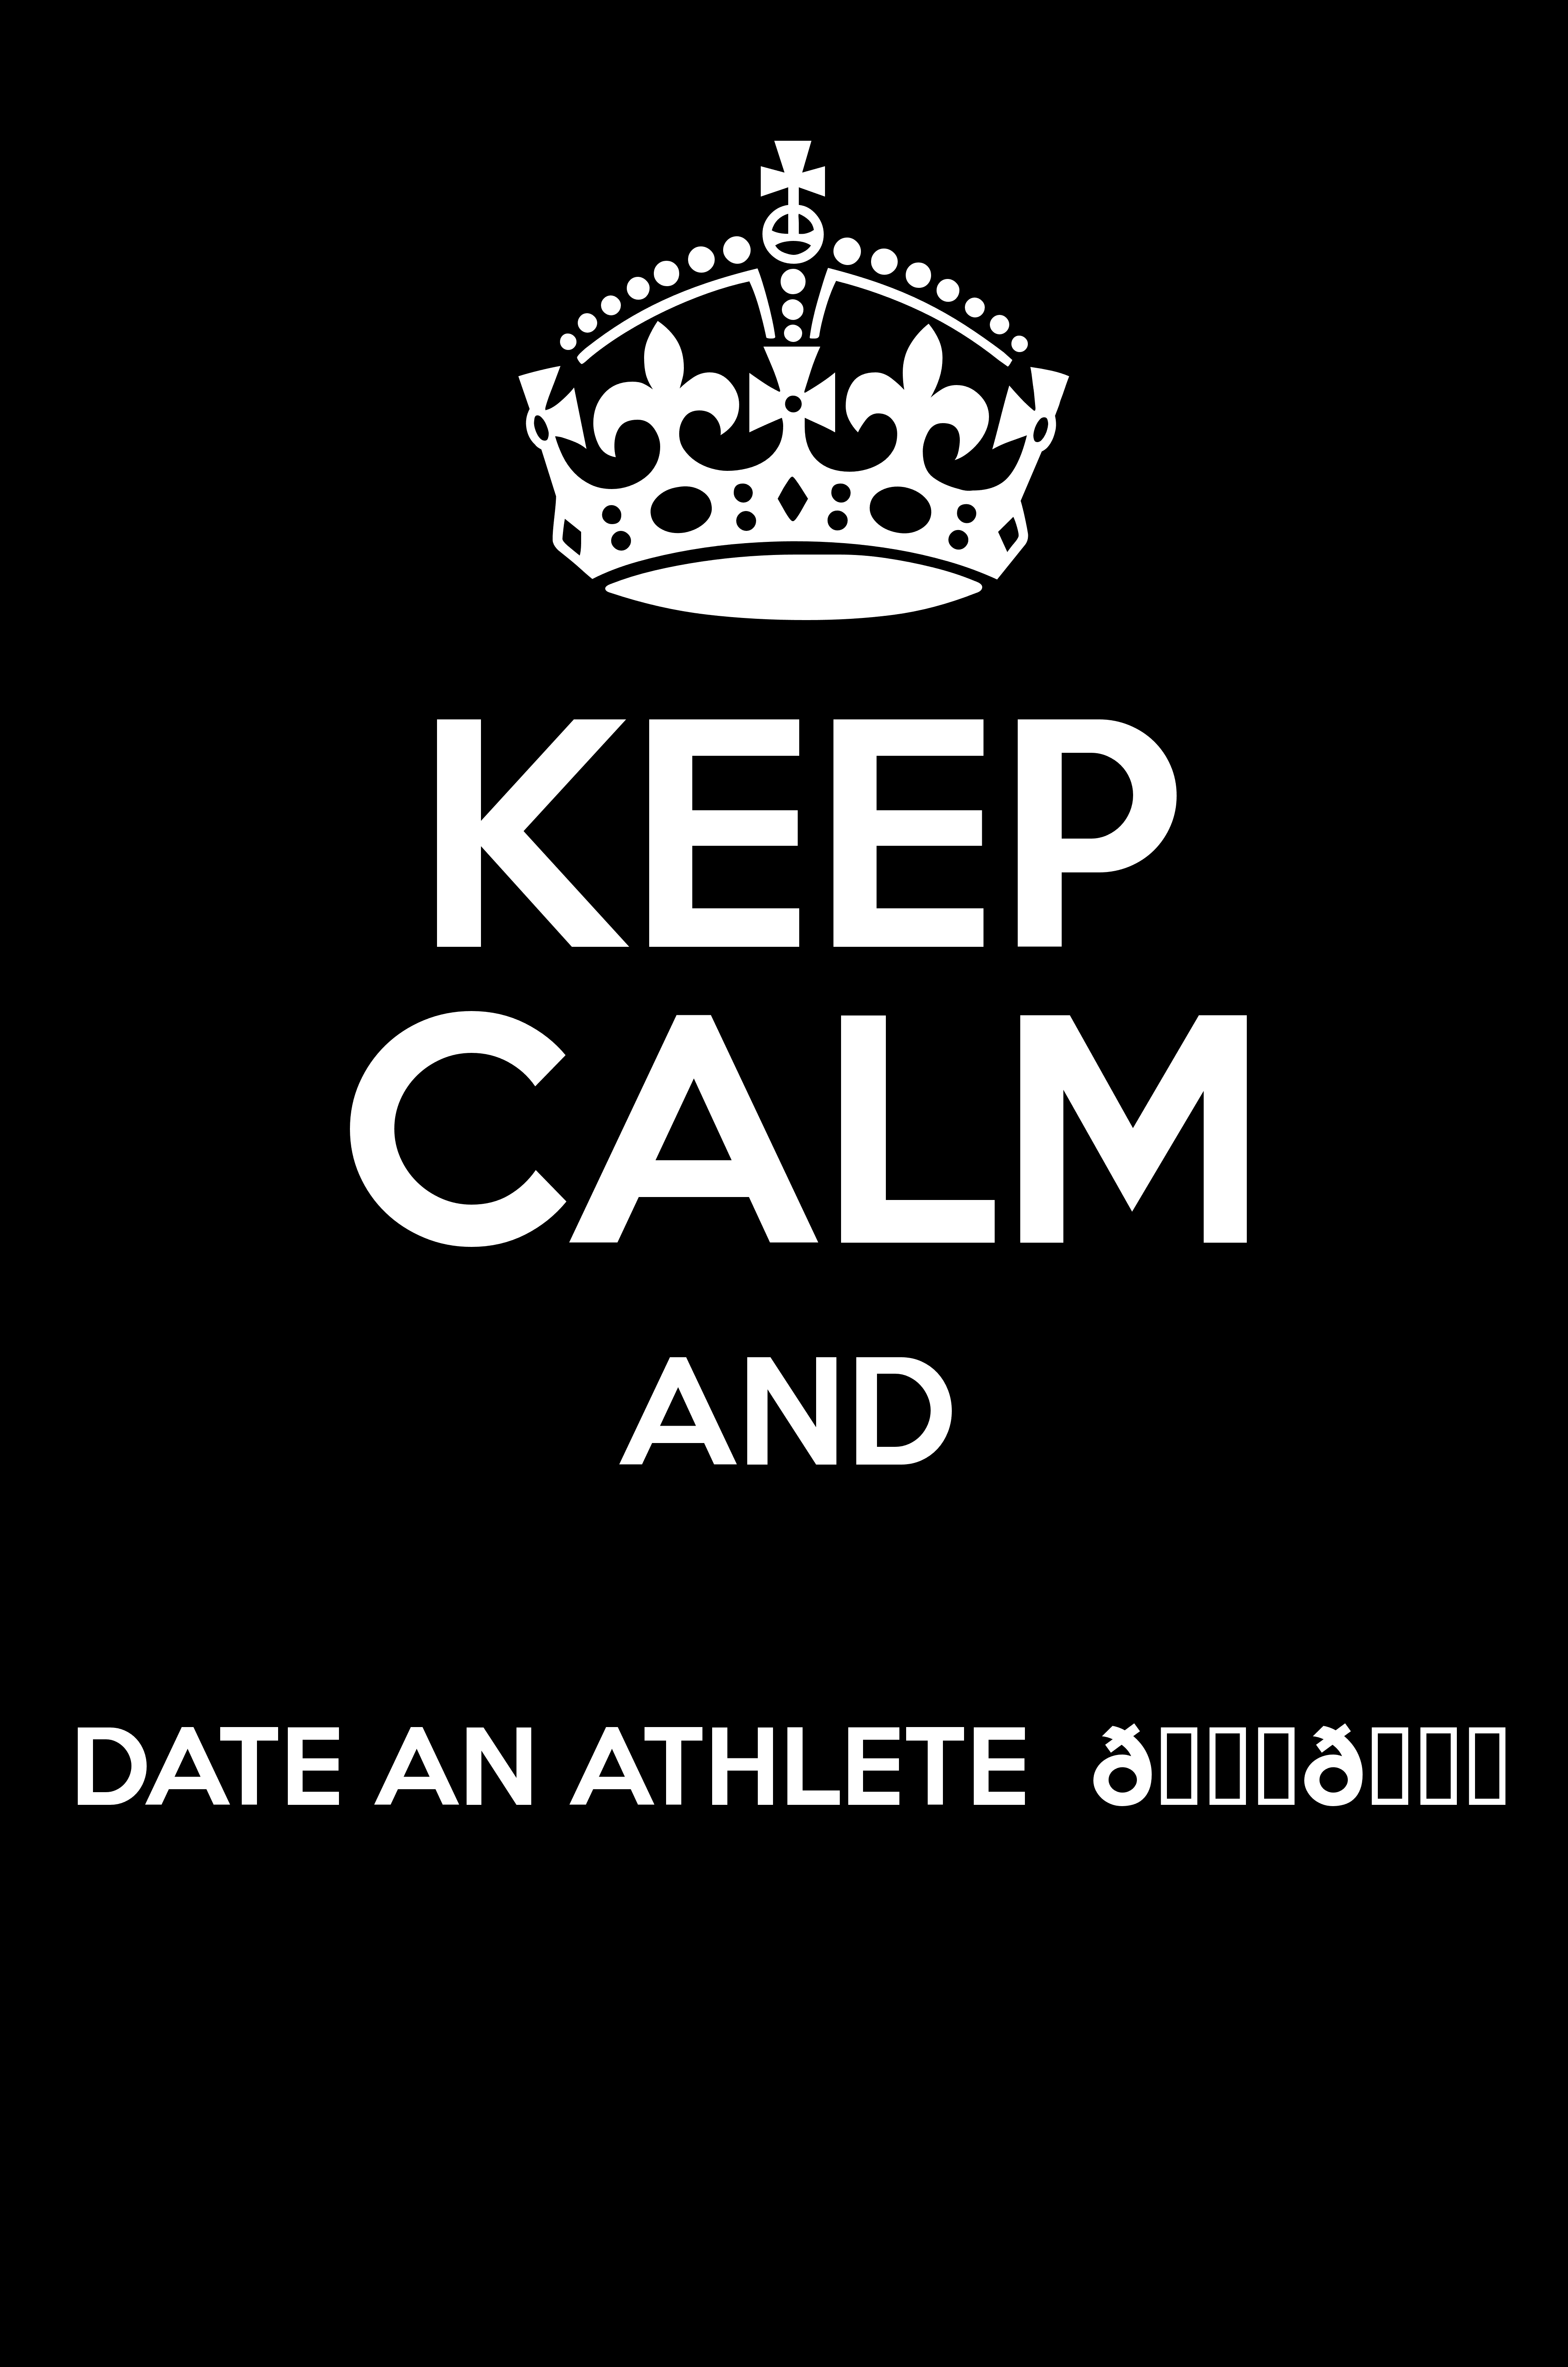 Model and athlete dating posters from photos